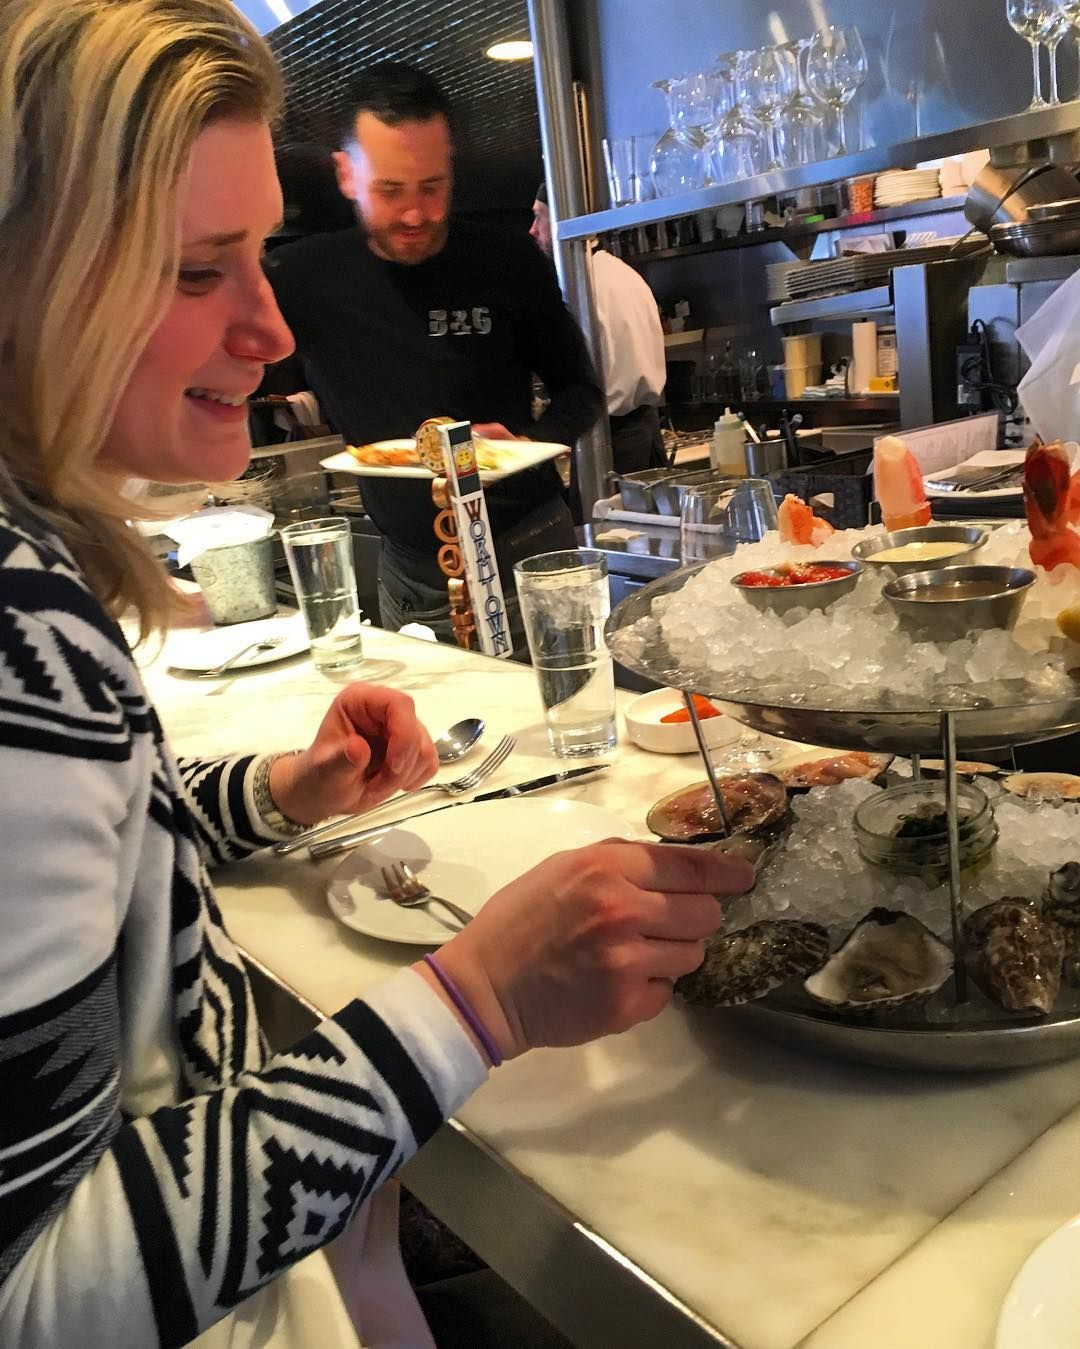 Adventures in the #tundra. #philly #blonde hanging out with #Boston #cambma #saltandpepper #indian #southindian at #southend #bandgoysters #shellfish #marthasvineyard and #katamabay #oysters #littleneck and #cherrystone #clams #snowcrab #jumboshrimp #shrimp #clamchowder #rawbar #smiles in #belowfreezing temps. by rags350 February 15 2016 at 05:50AM